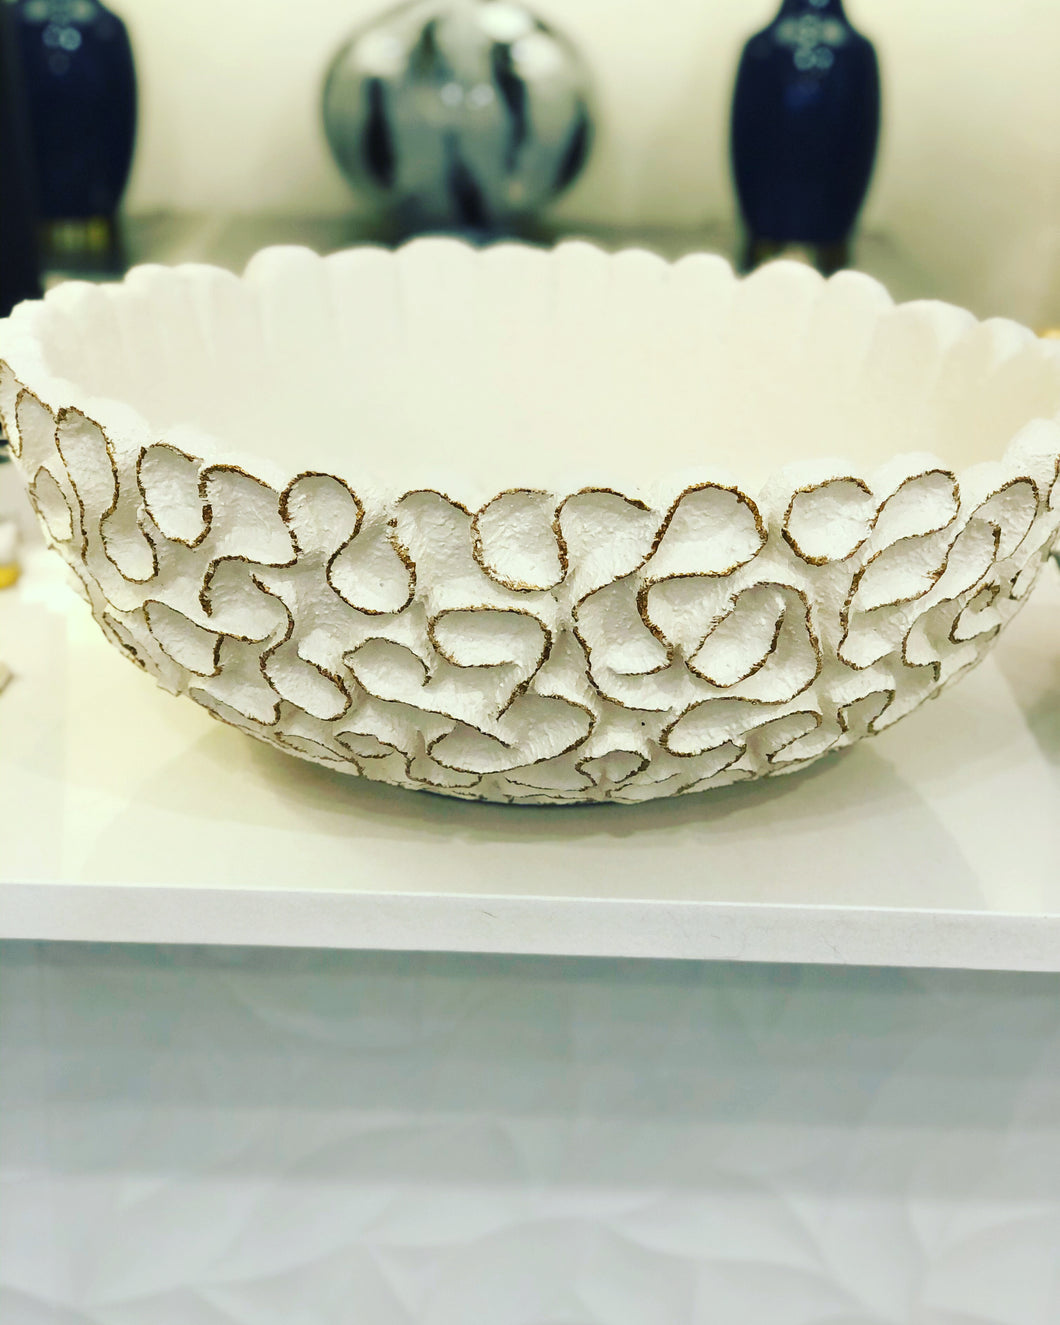 Porcelain 22-inch round white/gold bowl